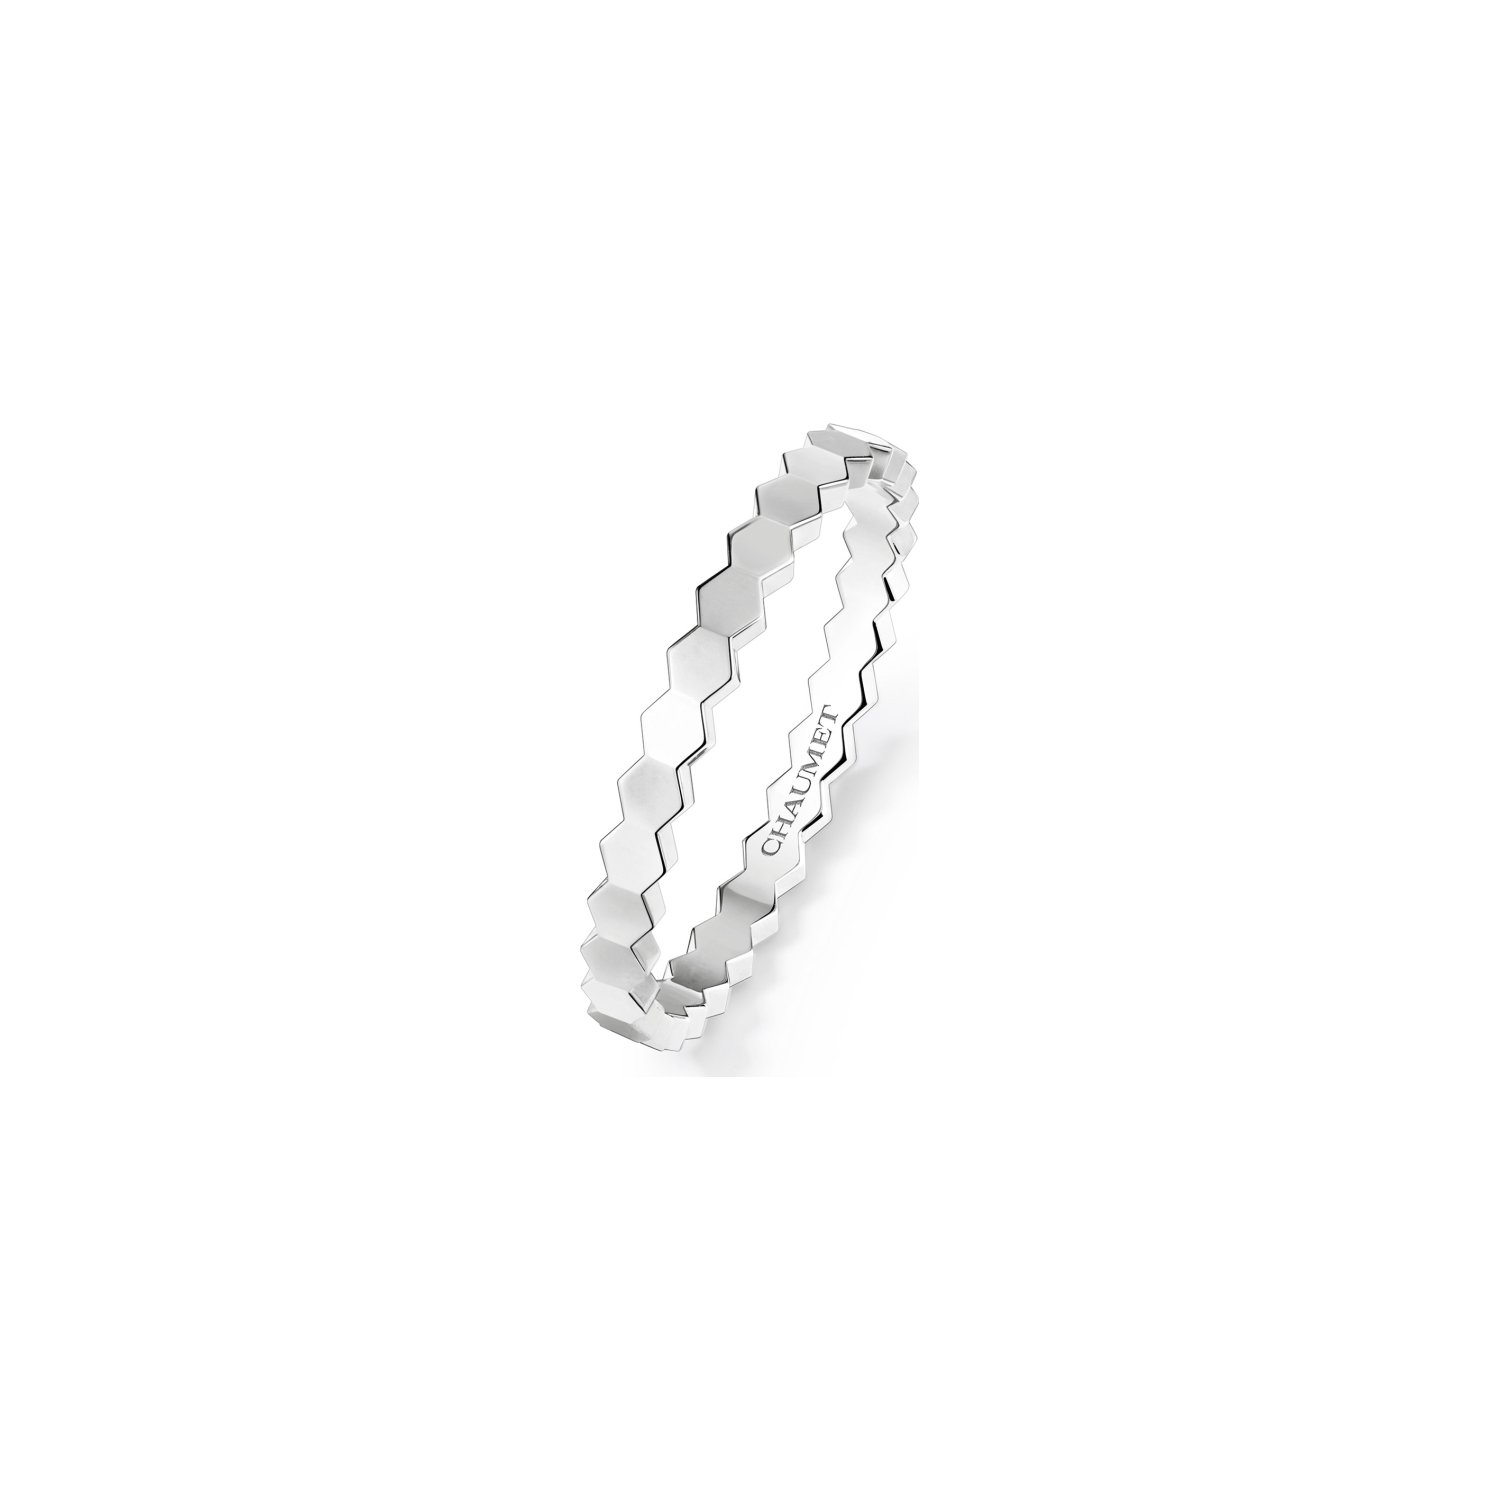 Bague Chaumet Bee my love en Or blanc